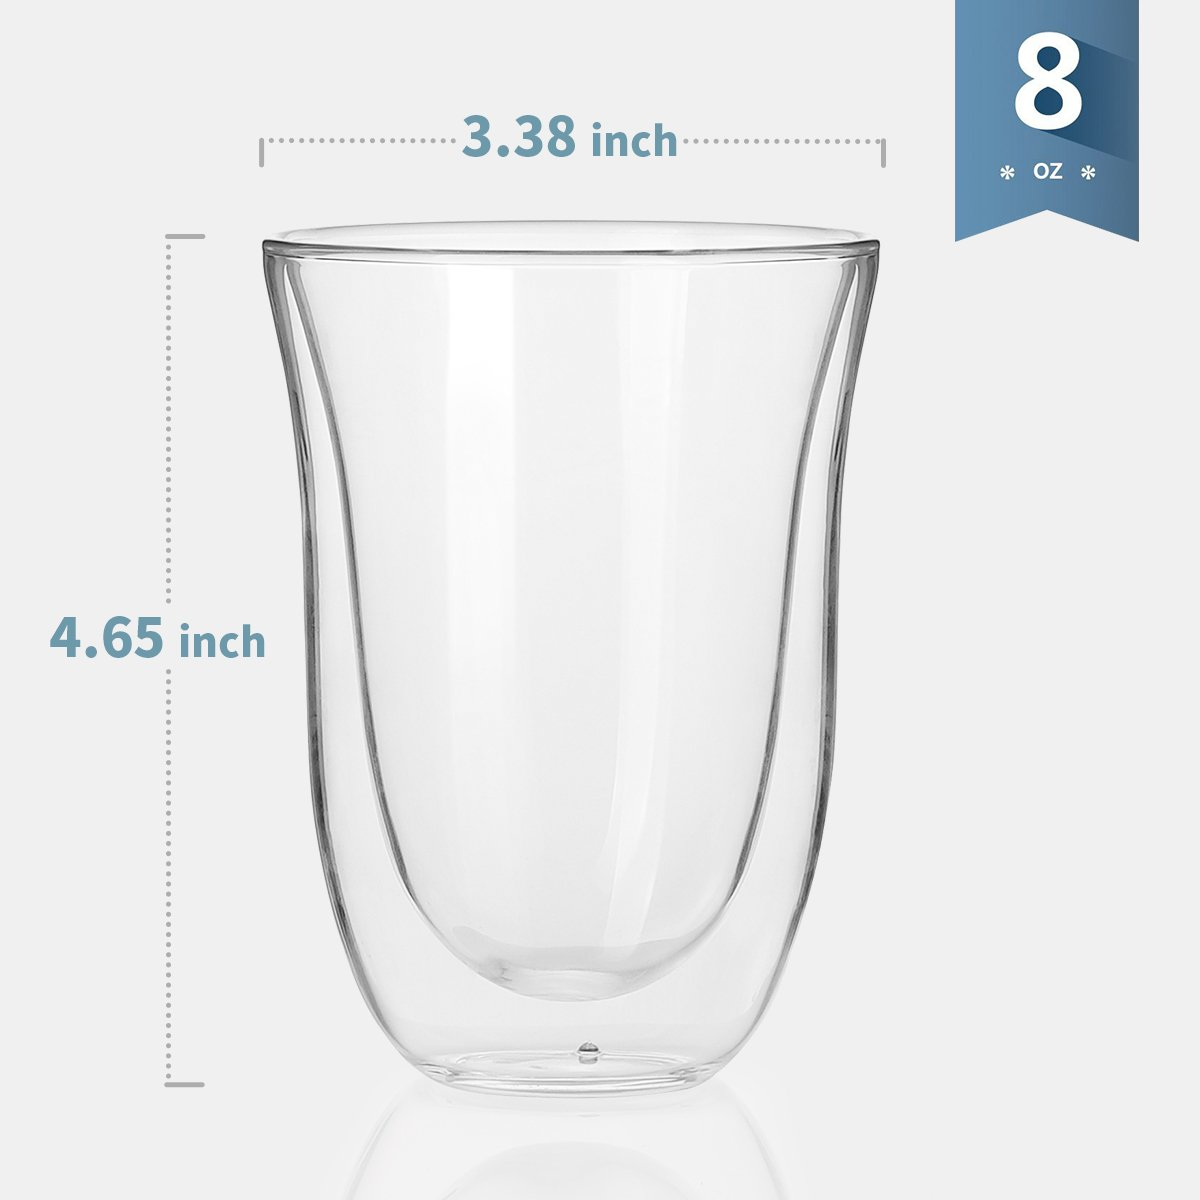 Sweese 4606 Glass Coffee Mugs - 8 Ounces, Double Wall Insulated Borosilicate Glasses , Espresso Cups Suitable for Cappuccino, Latte, Cream, Tea, Kinds of Beverage, Set of 2 by Sweese (Image #1)